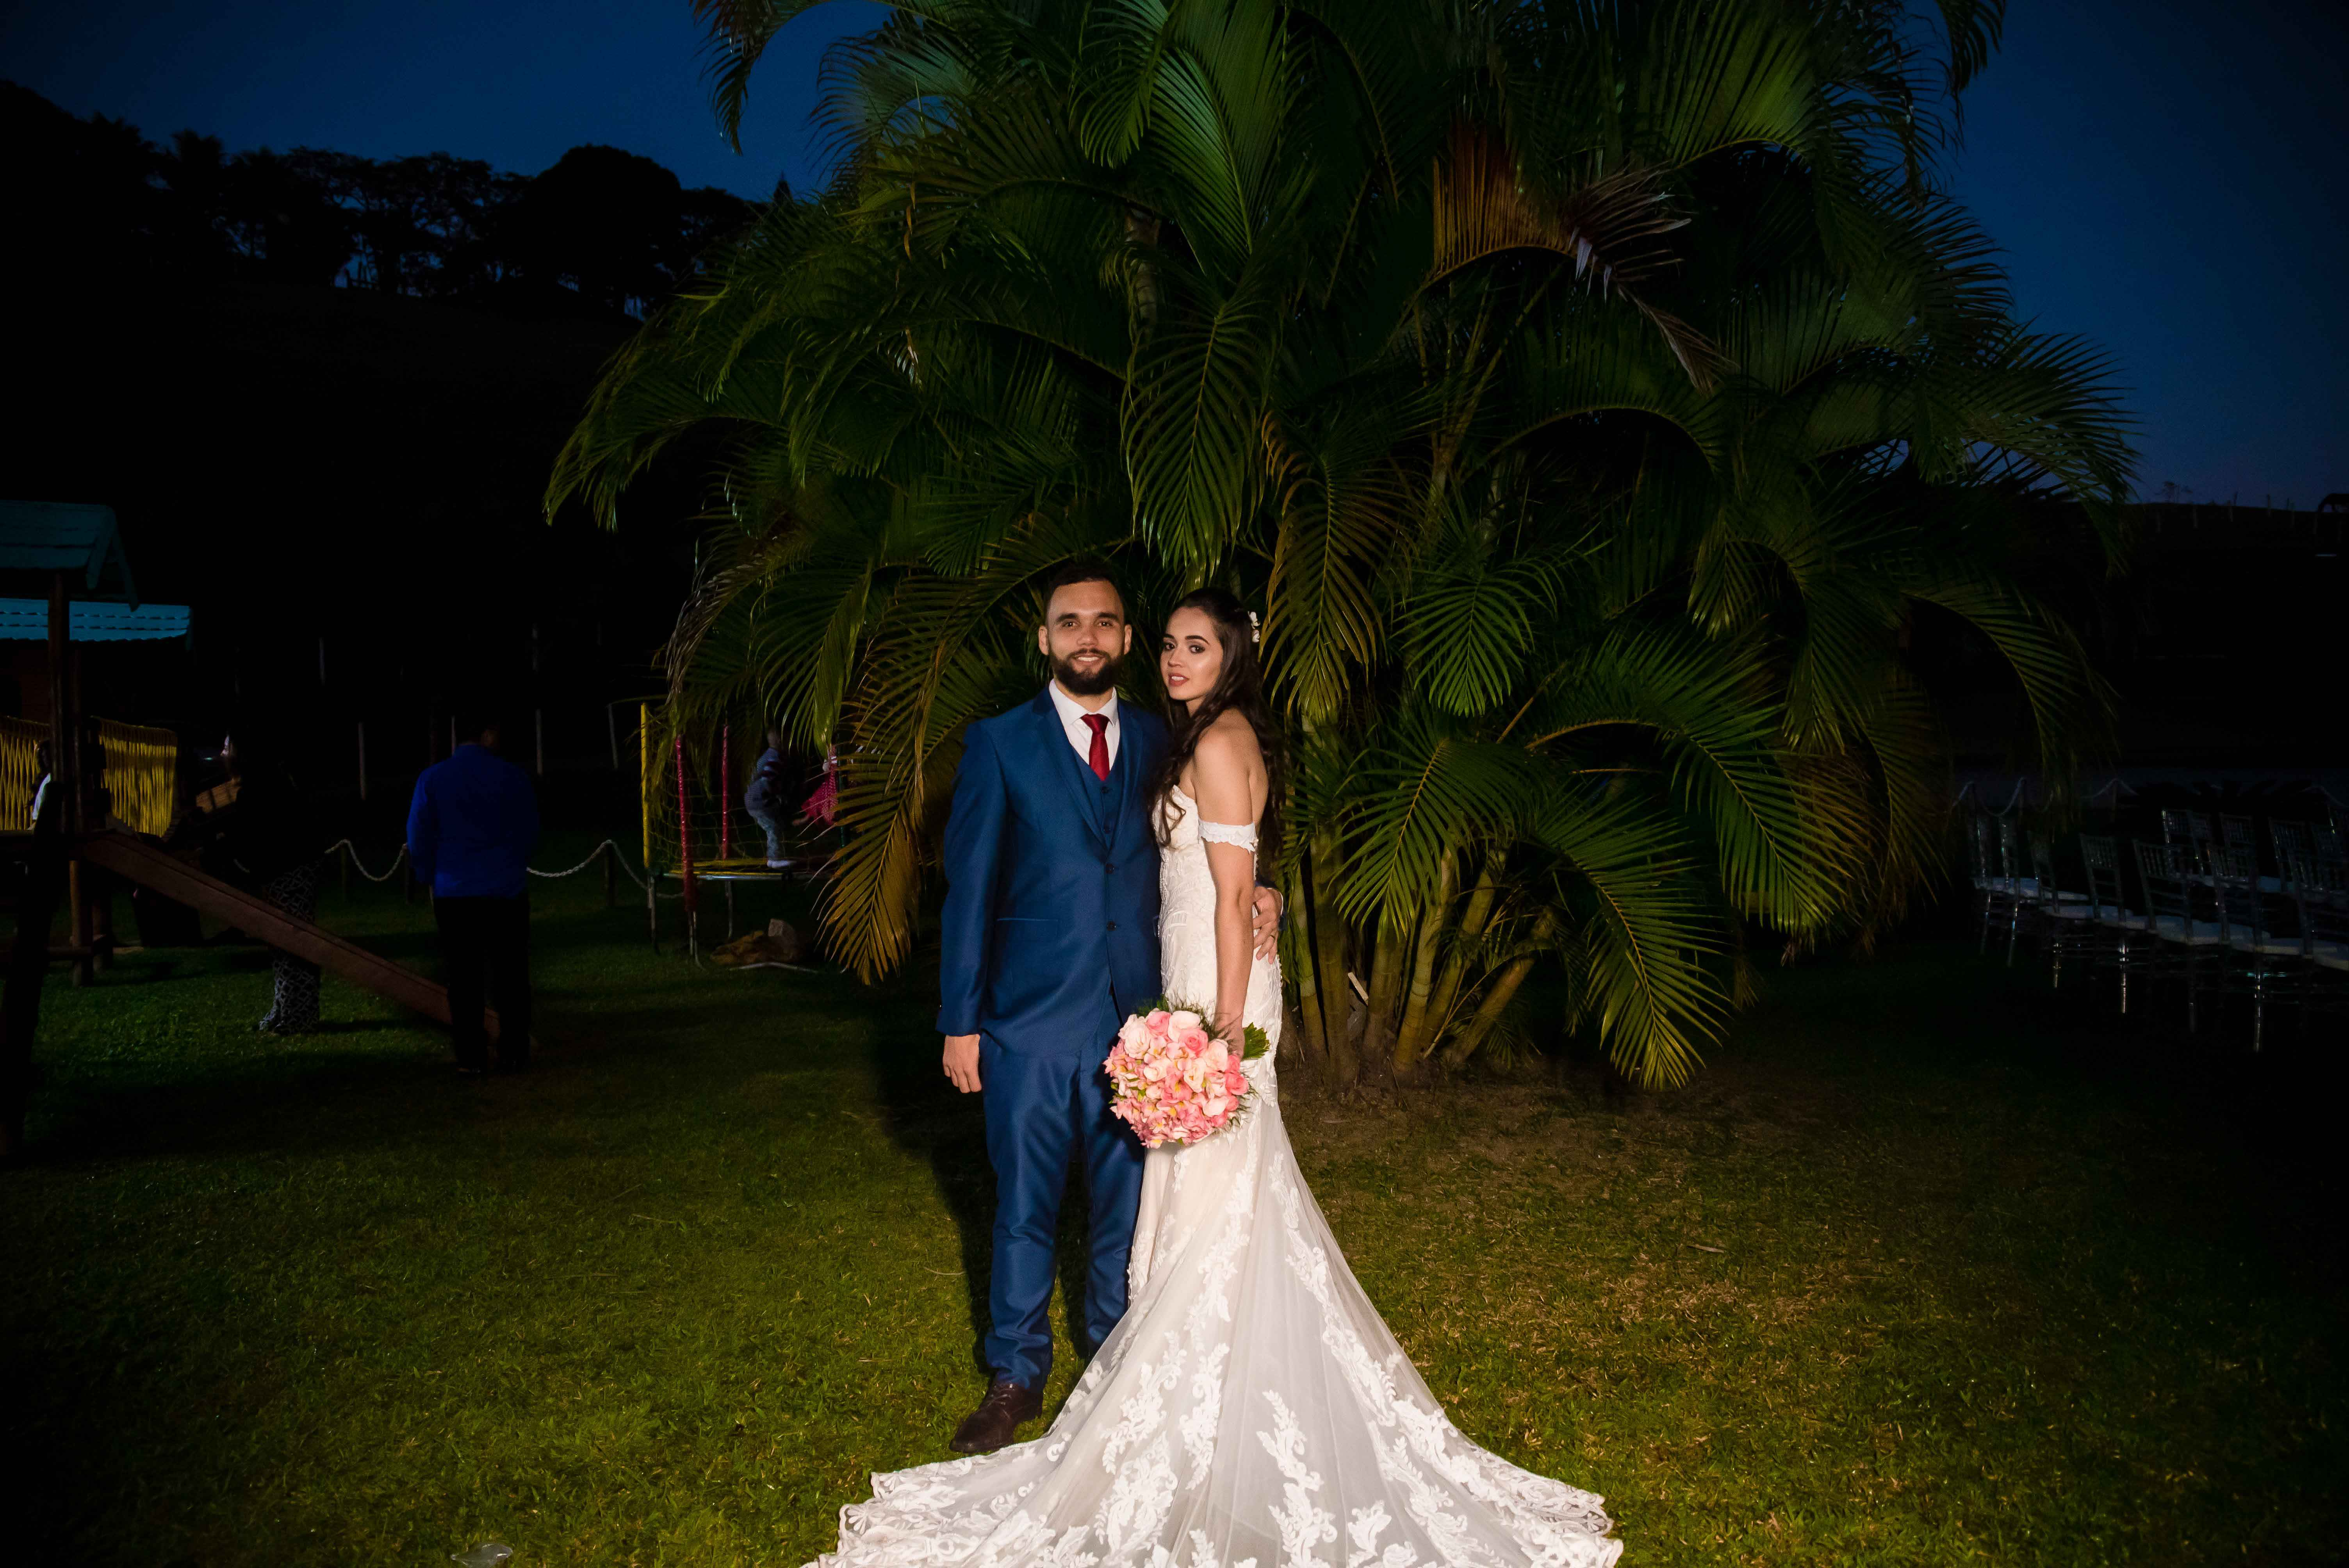 Andressa e Marcos - Marcelle Bortoli Photography